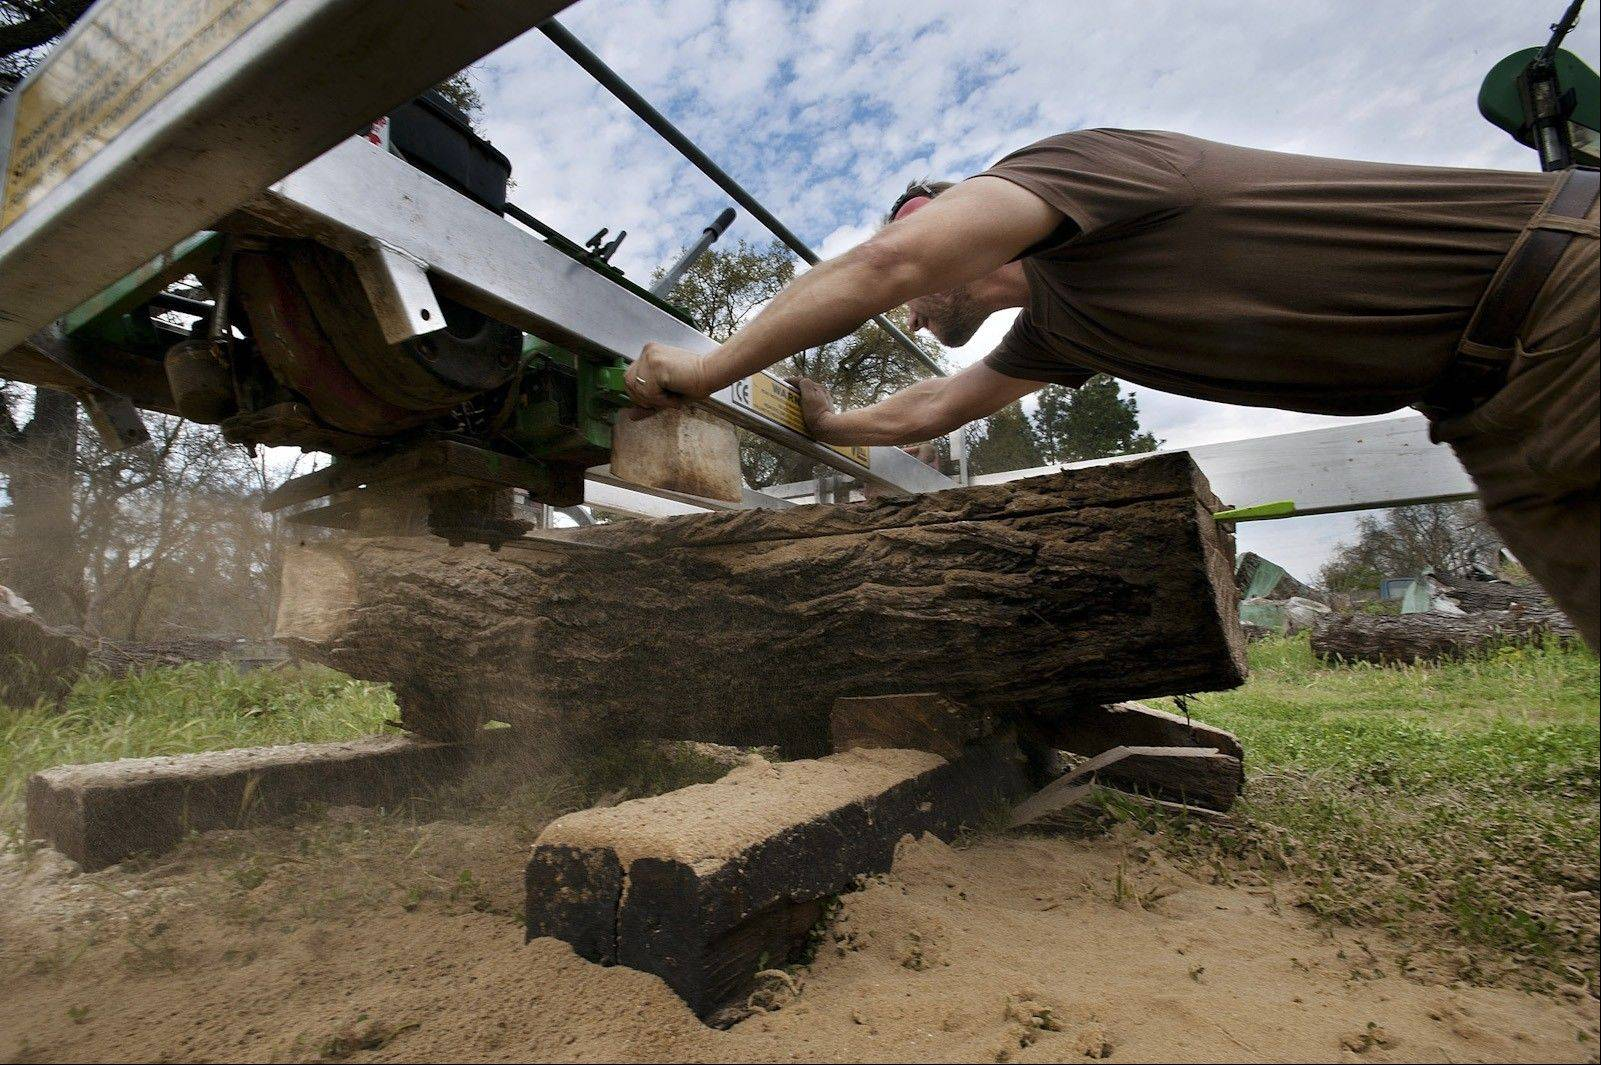 Clark Kayler cuts walnut on an outdoor sawmill at his home. He uses timber from storm- damaged trees to make furniture.